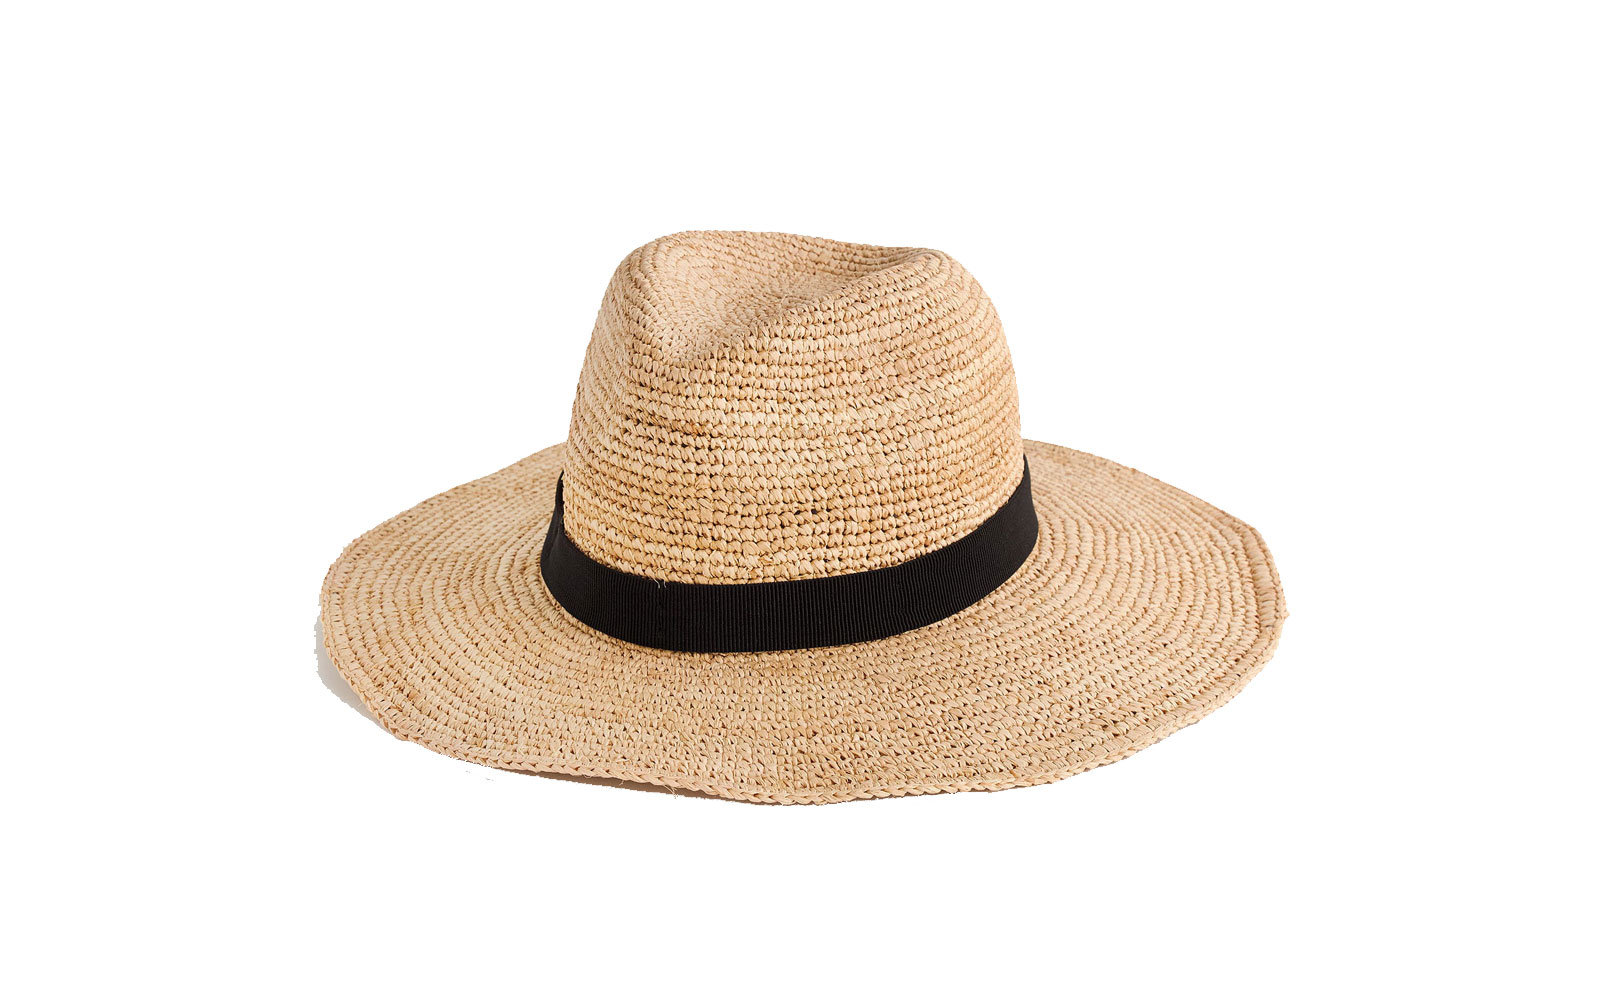 J.Crew foldable straw hat